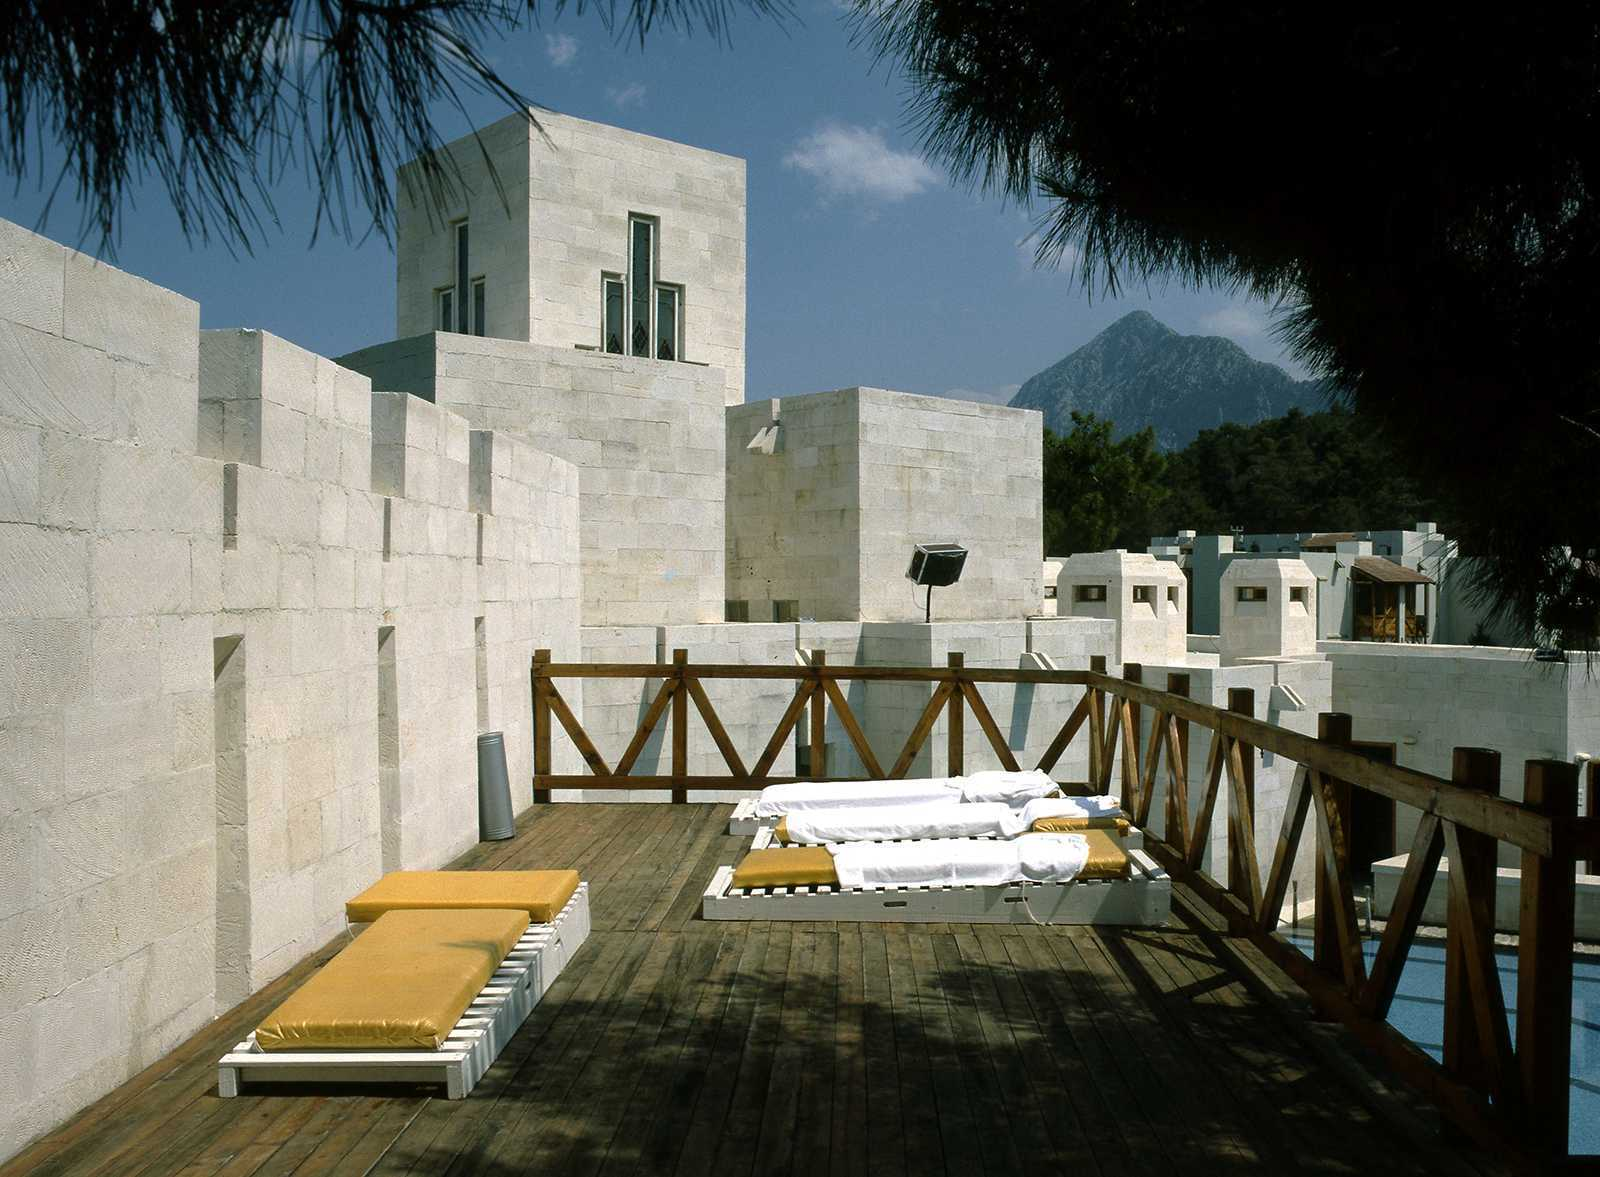 Milta Vacation Village, Birlesmis Mimarlar (United Architects), Bodrum, 1986.